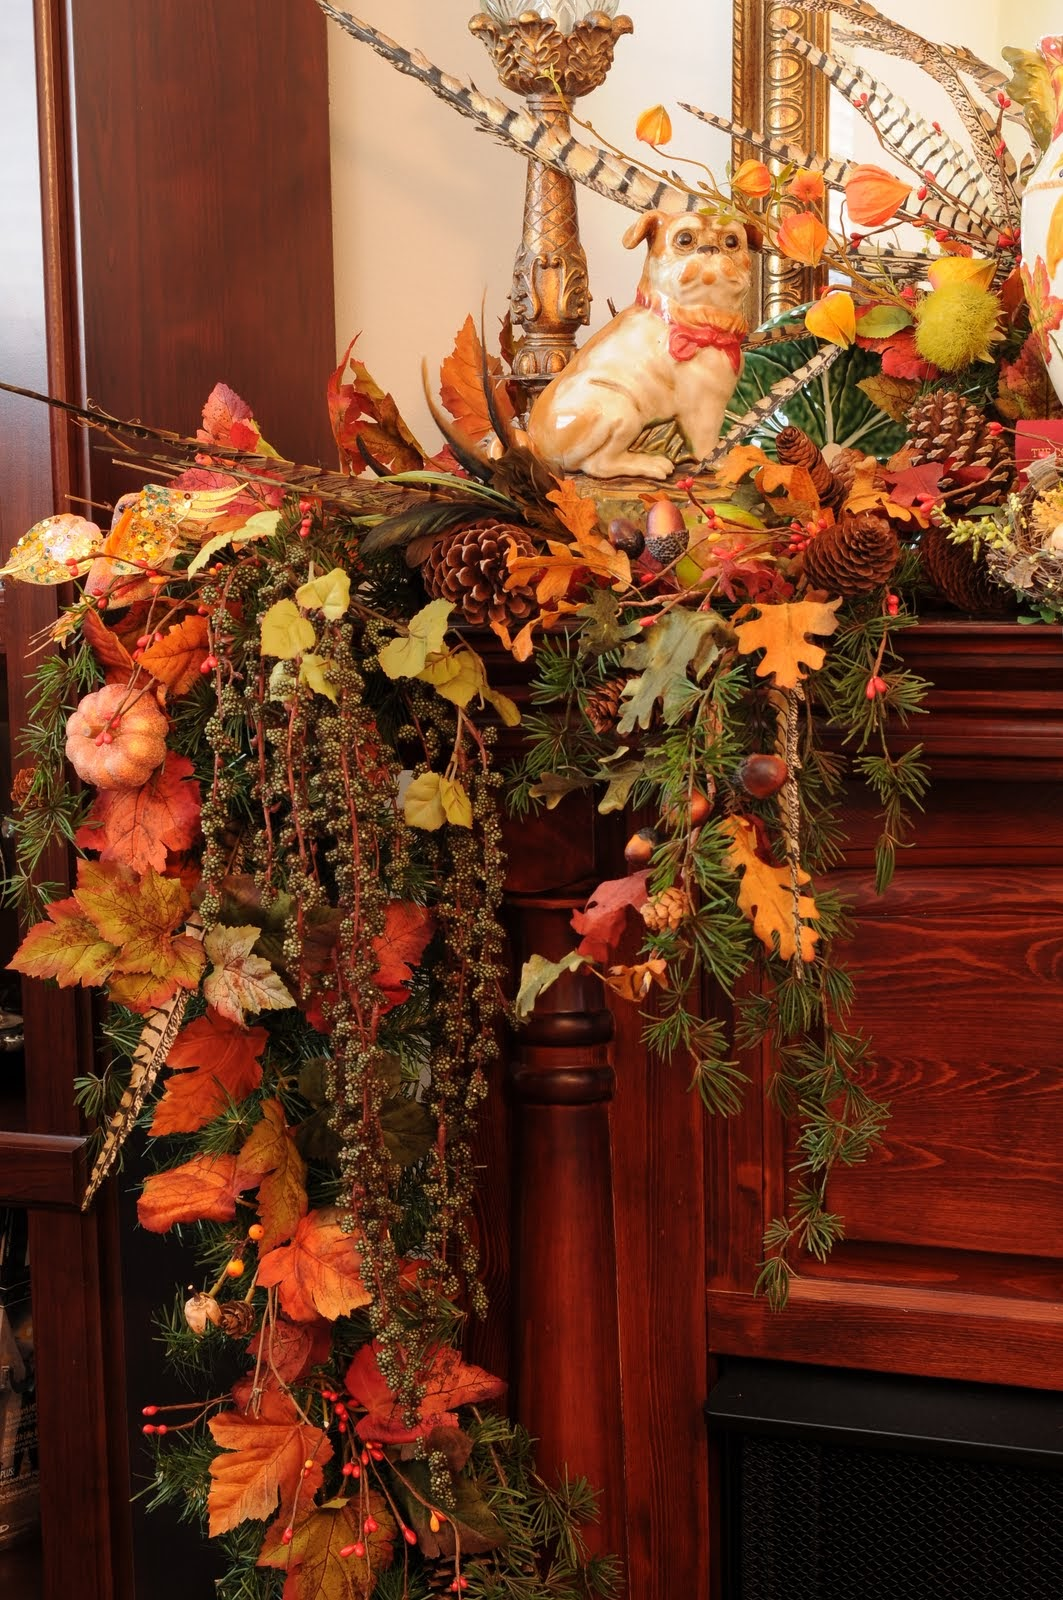 CBID HOME DECOR and DESIGN FALL DECOR THANKSGIVING TABLE AND HOME DECOR